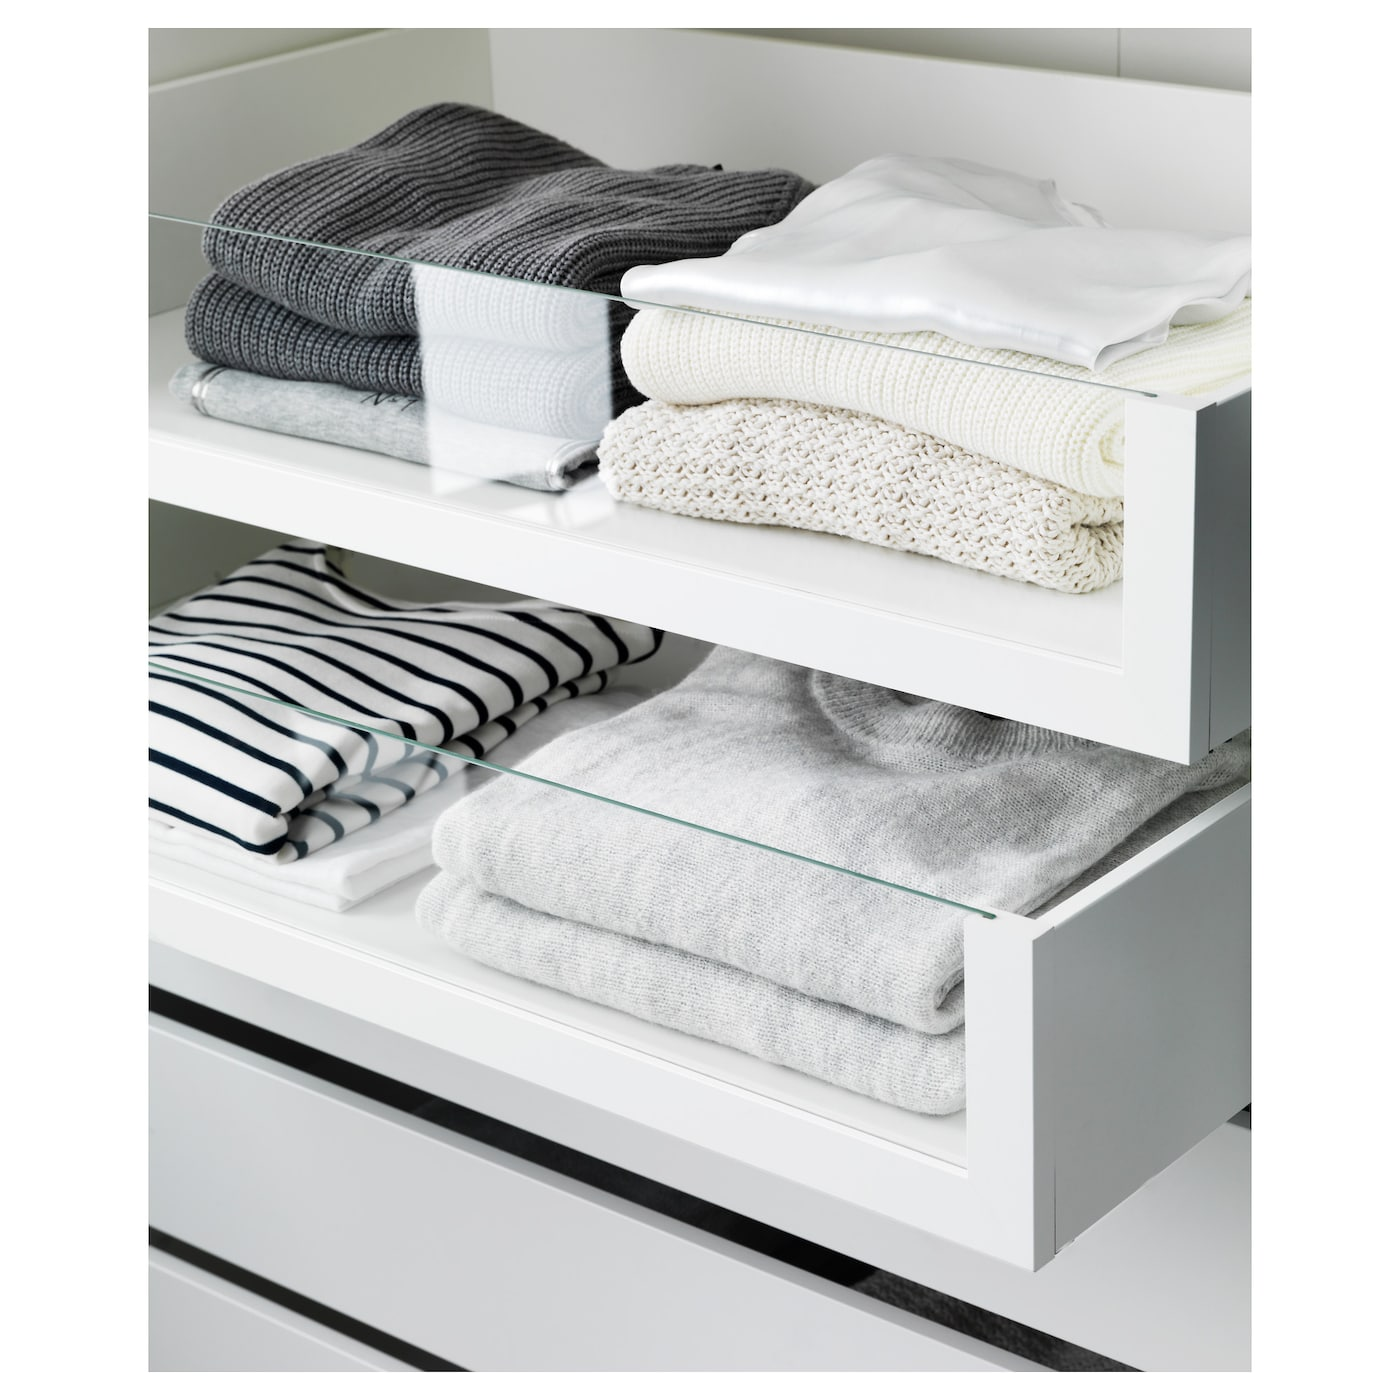 komplement drawer with glass front white 100 x 58 cm ikea. Black Bedroom Furniture Sets. Home Design Ideas